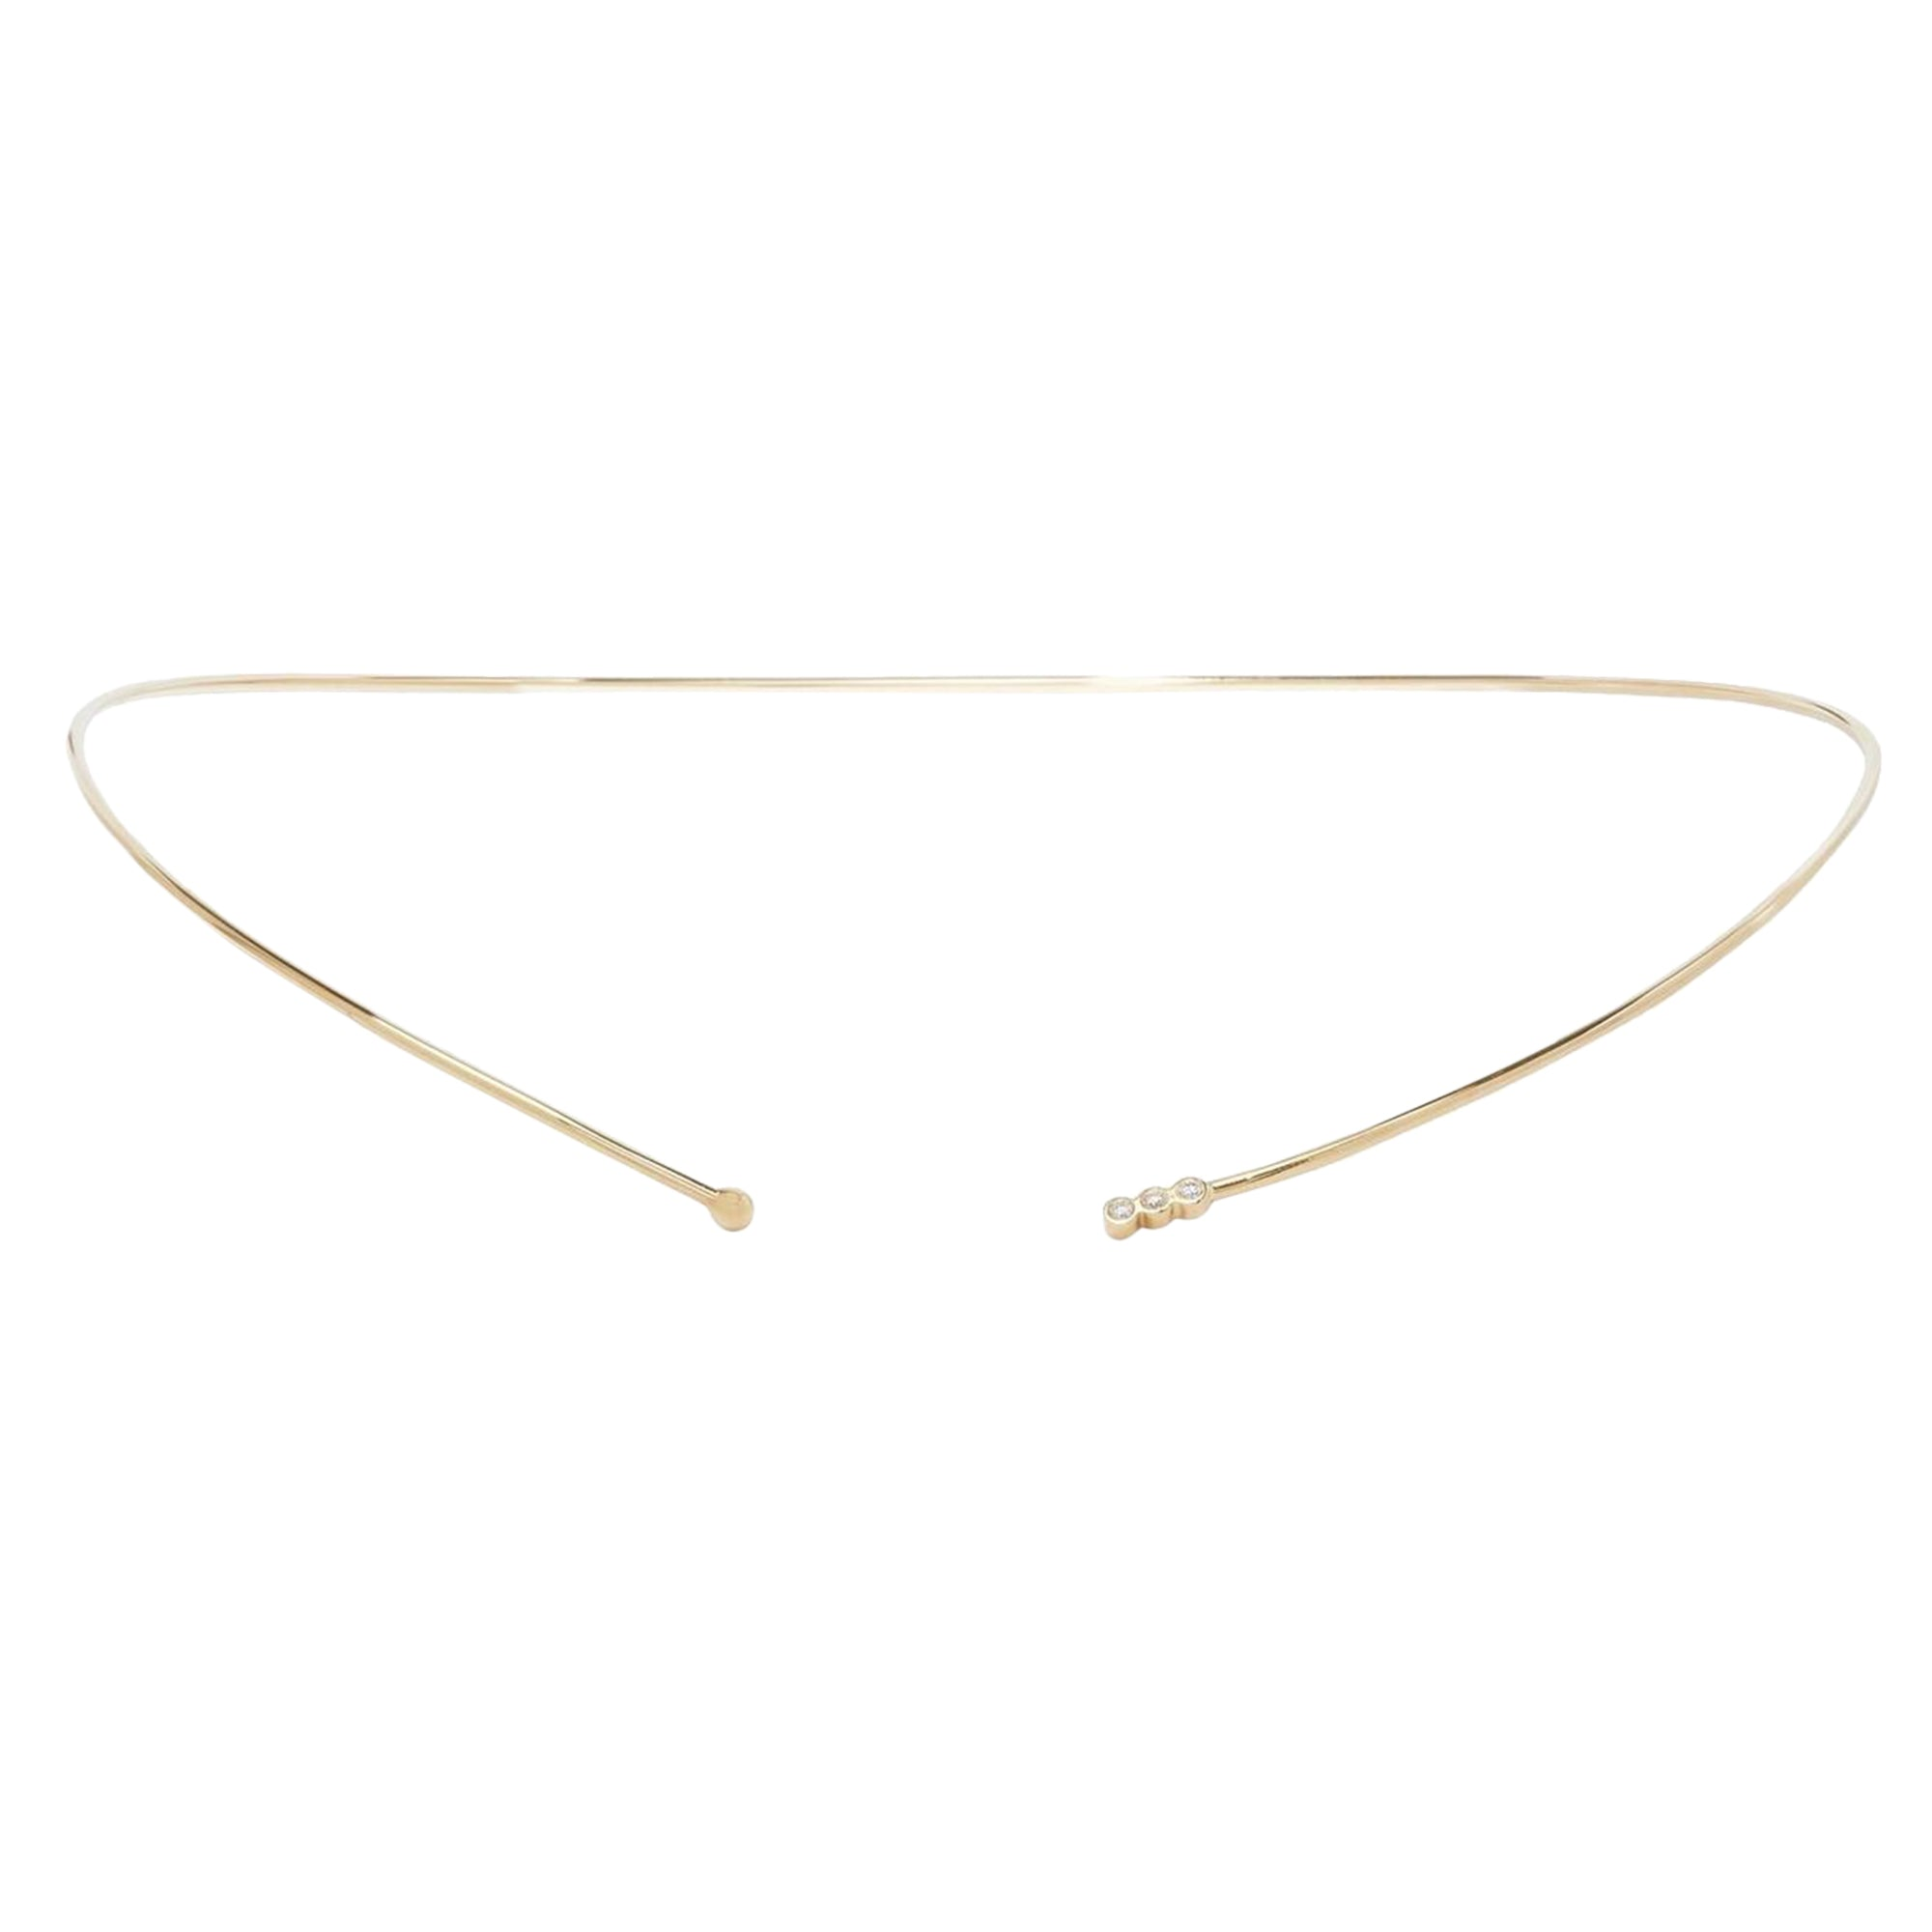 Gold & White Diamond 3 Bezel Choker by Jennie Kwon for Broken English Jewelry